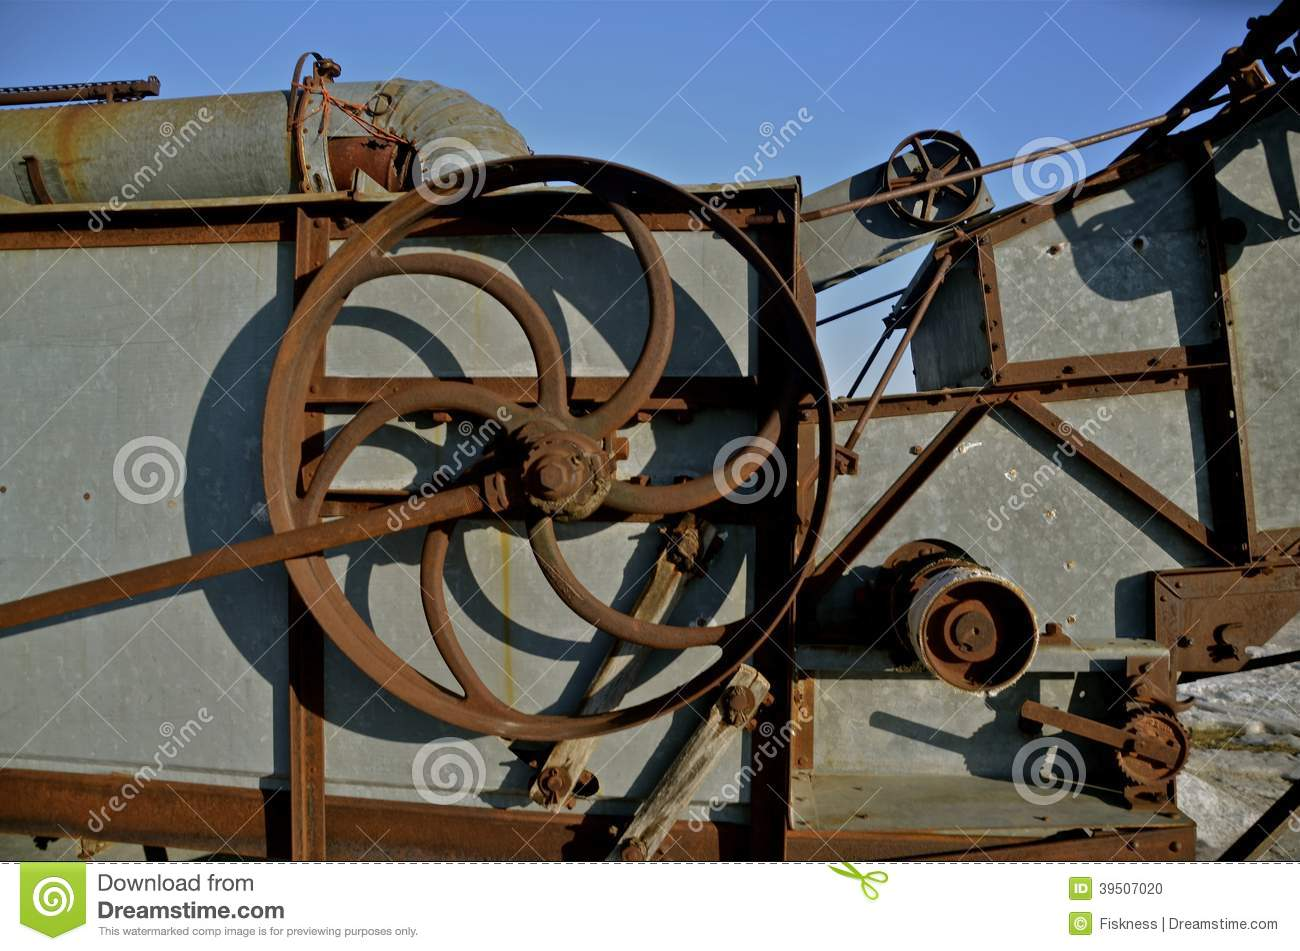 Download Pulley Of A Threshing Machine Stock Photo - Image of chaff, gears: 39507020